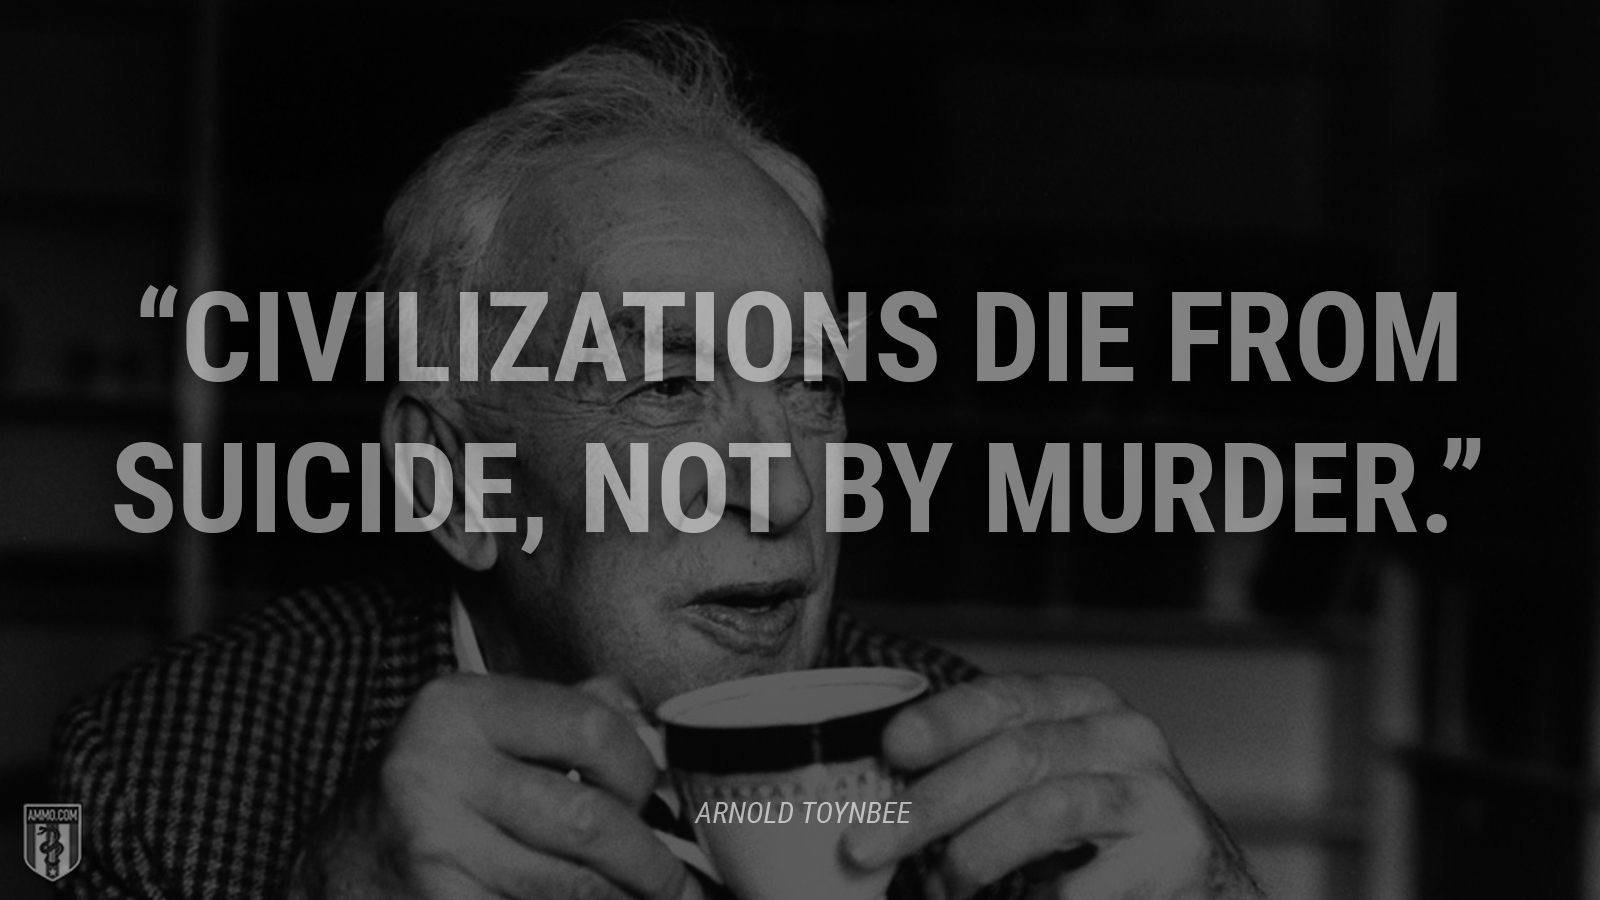 """Civilizations die from suicide, not by murder."" - Arnold Toynbee"